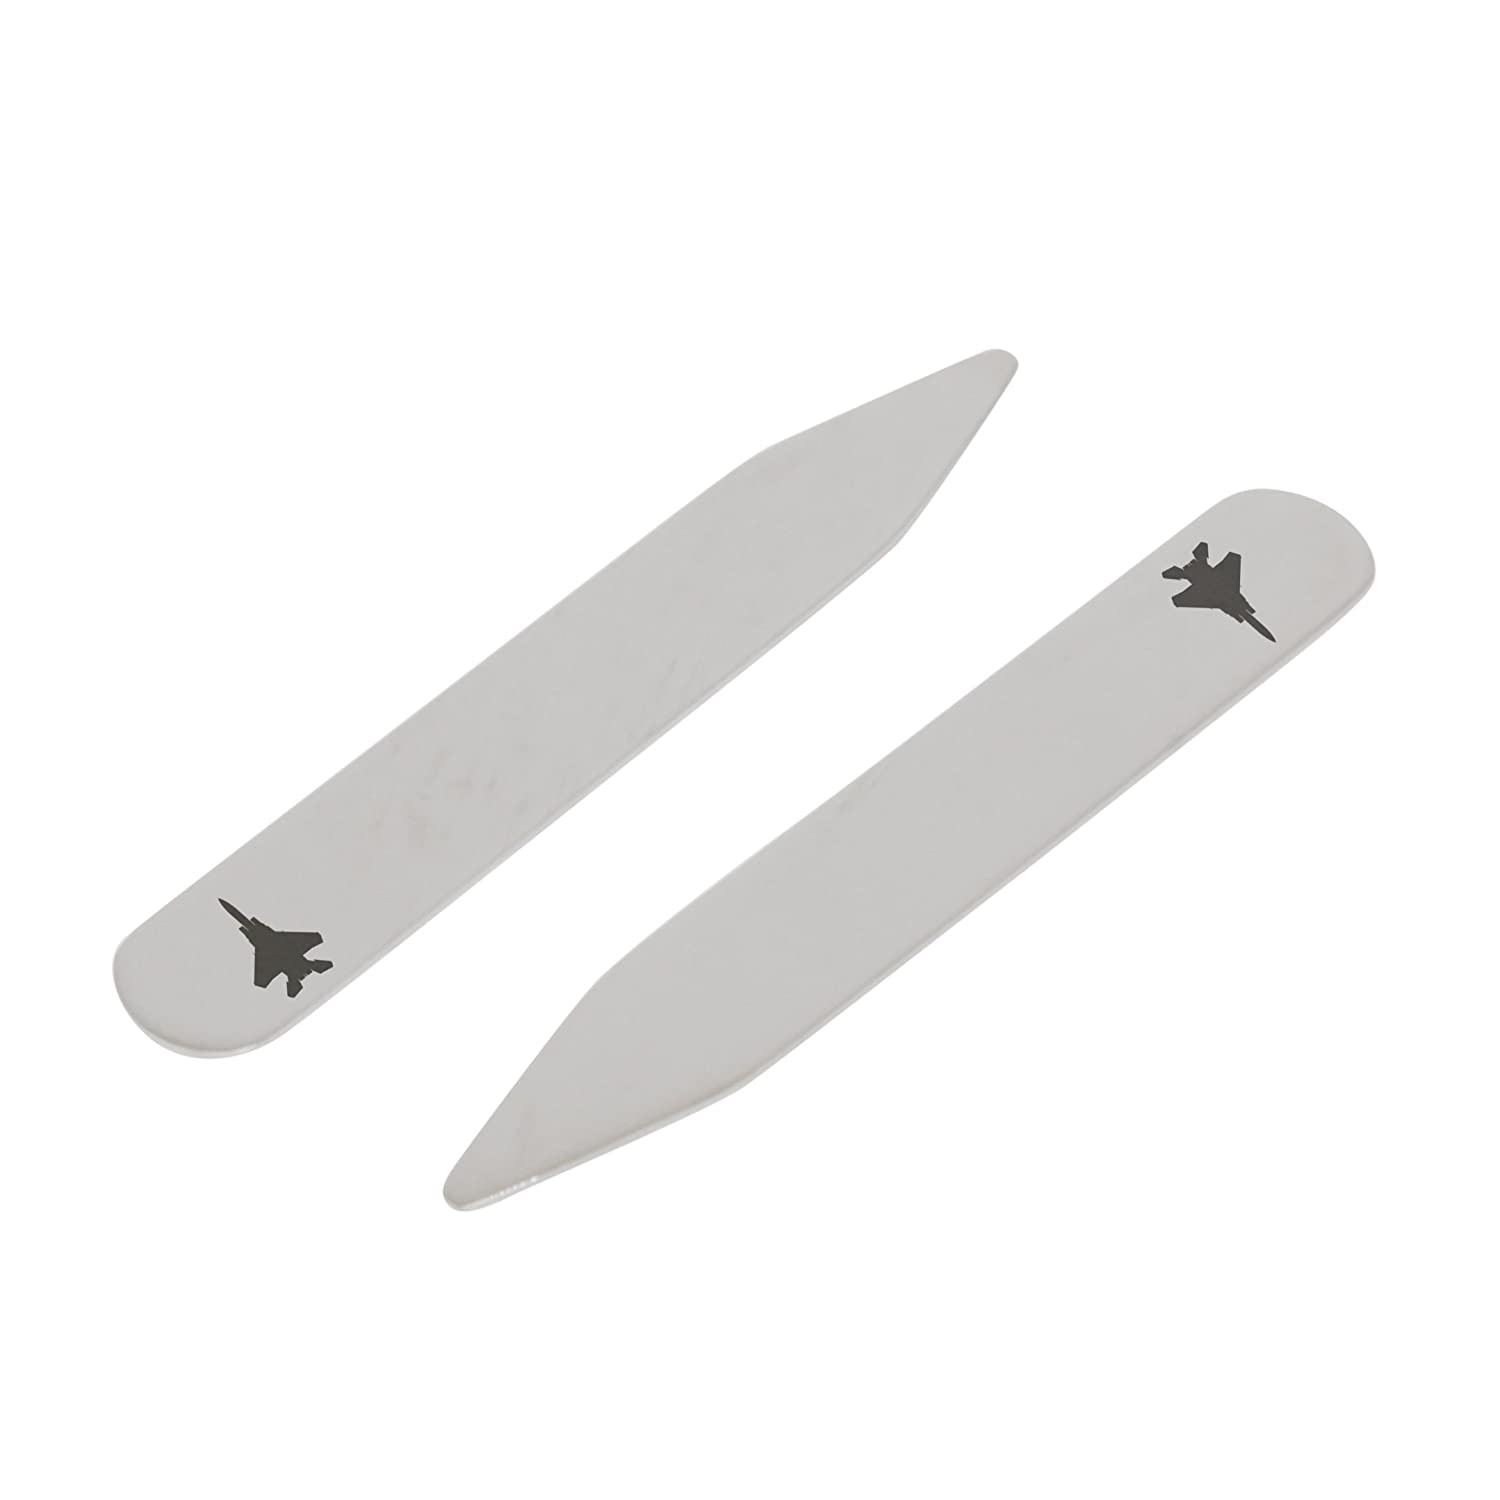 Made In USA MODERN GOODS SHOP Stainless Steel Collar Stays With Laser Engraved Basketball Hoop Design 2.5 Inch Metal Collar Stiffeners